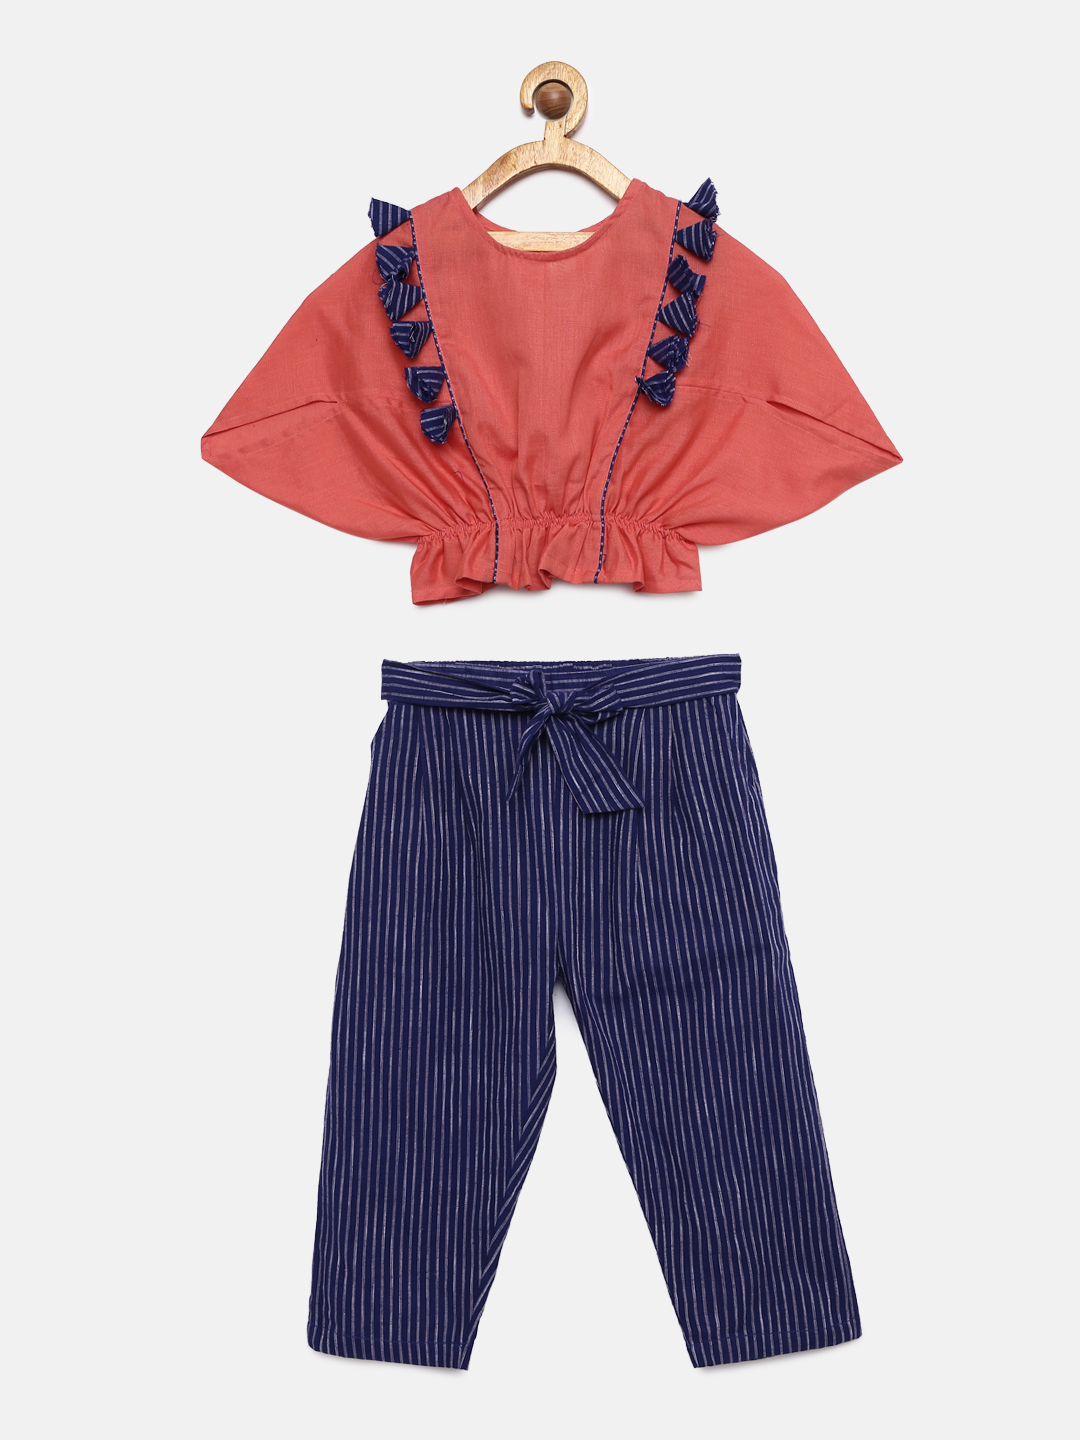 1 1 Baloon Tops with Triangular Sleeves and Stripped Trouser- Coral and Blue